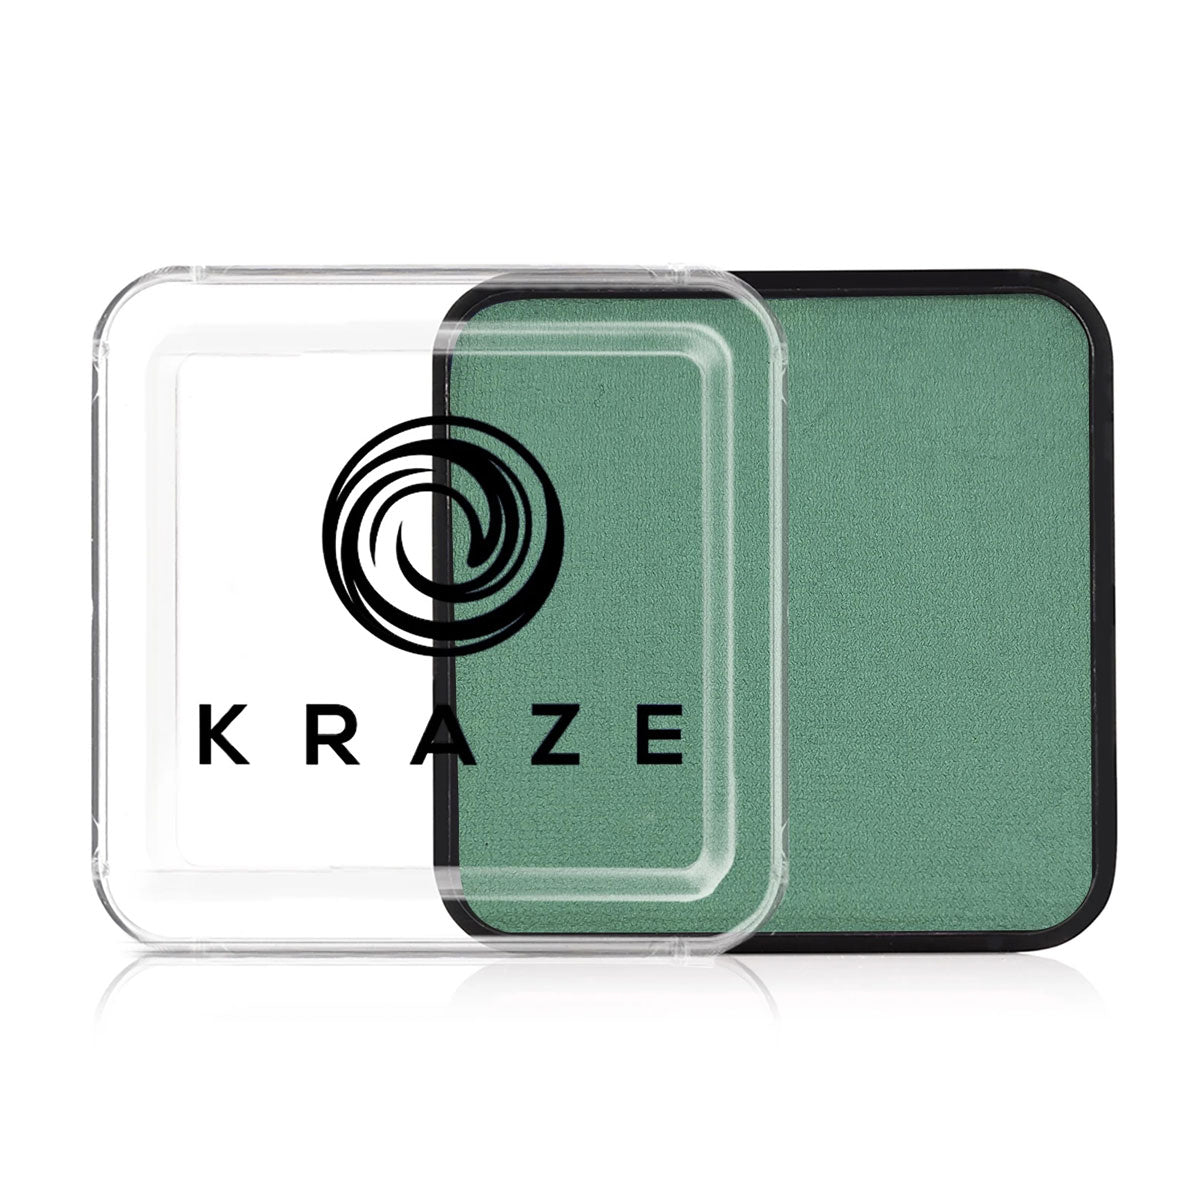 Metallic Green Square 25g - Kraze